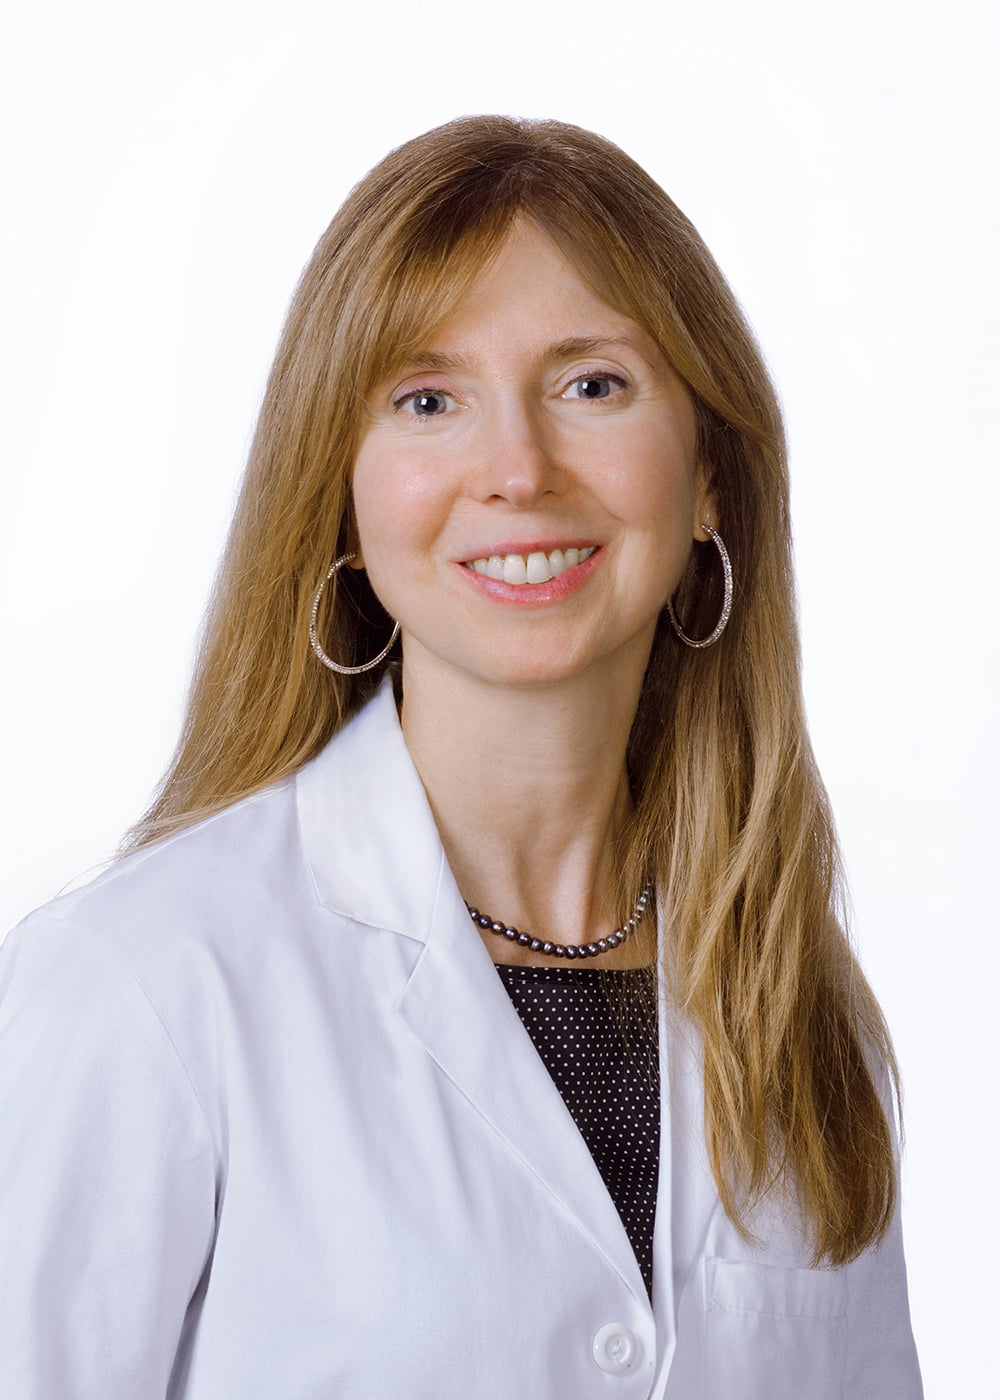 Kimberly Anderson M.D.